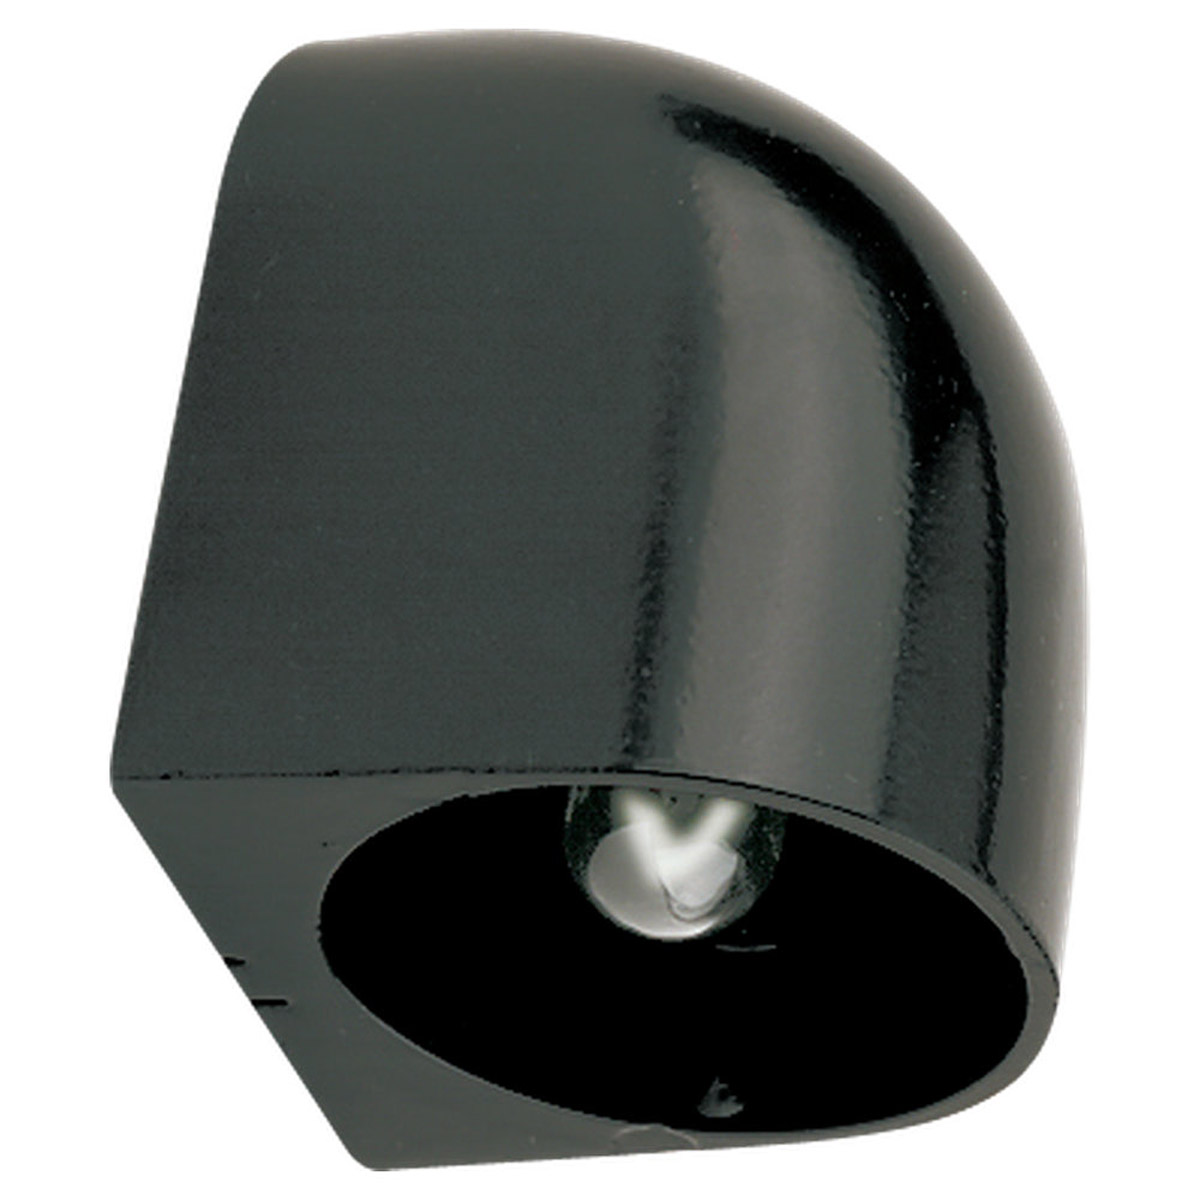 Sea Gull Lighting 2 Light Landscape Lighting Surface Mounted Deck Light in Black 9396-12